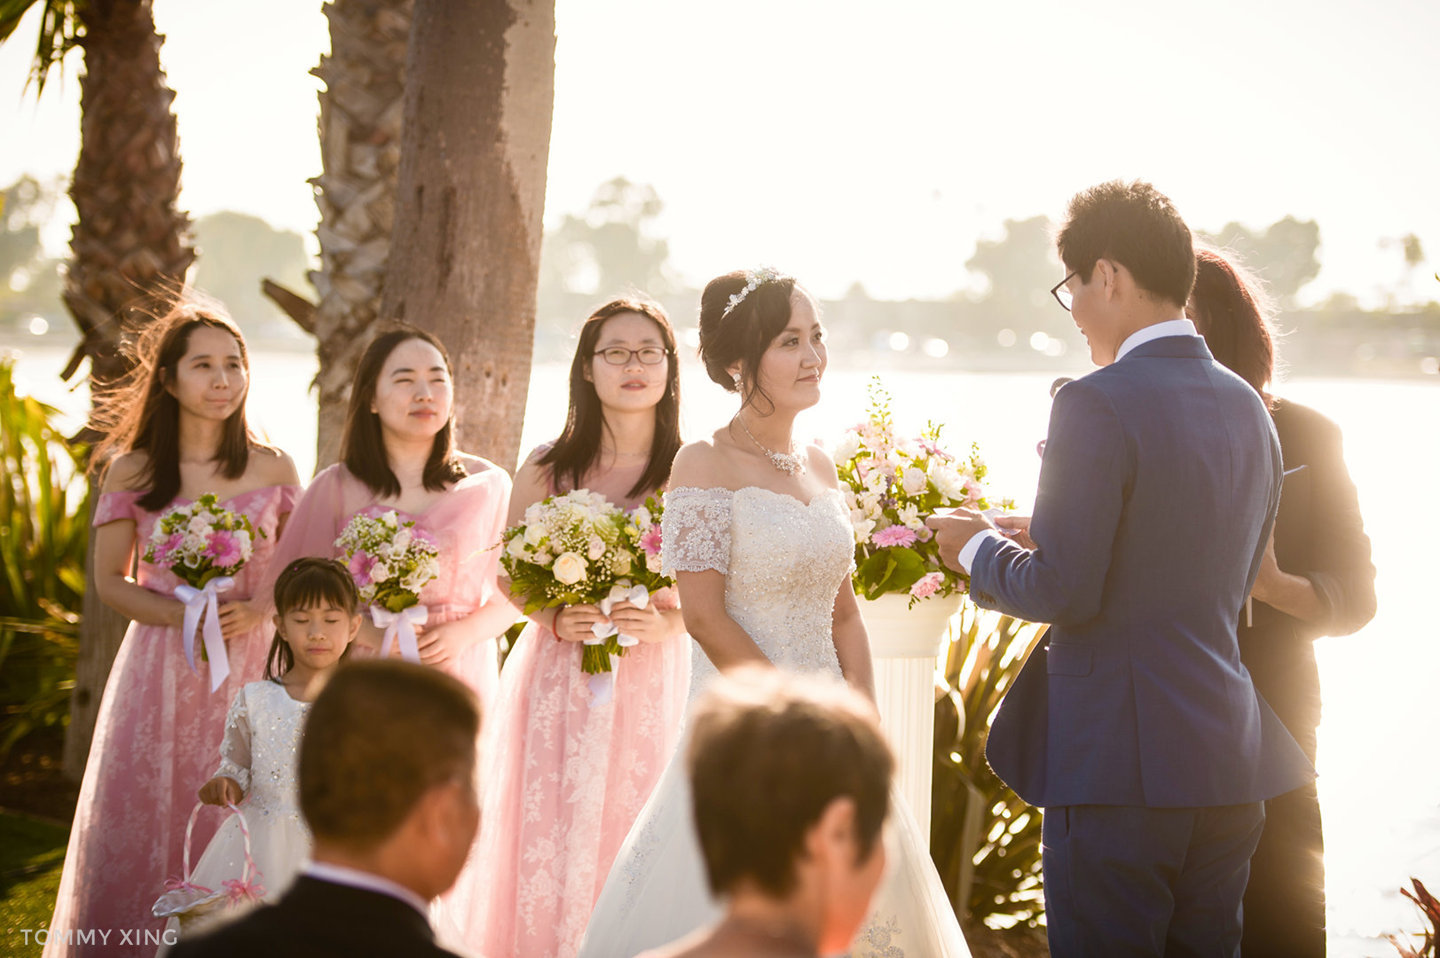 Paradise Point Resort Wedding Xiaolu & Bin San Diego 圣地亚哥婚礼摄影跟拍 Tommy Xing Photography 洛杉矶婚礼婚纱照摄影师 135.jpg